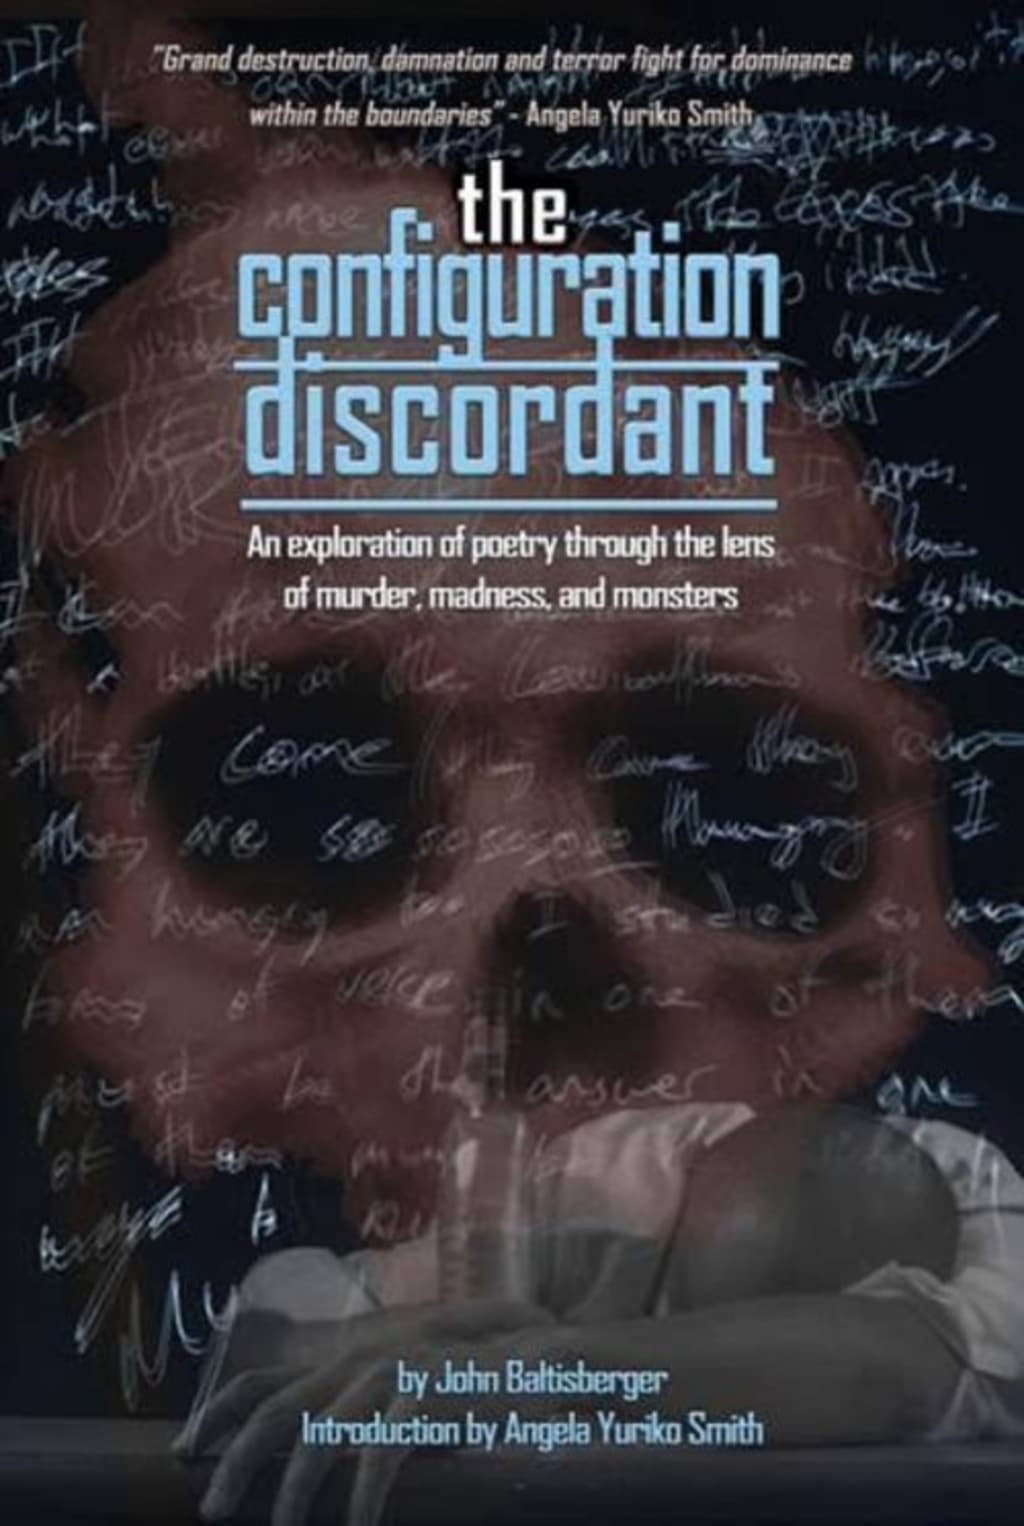 Reed Alexander's Horror Review of 'The Configuration Discordant' by John Baltisberger (2020)